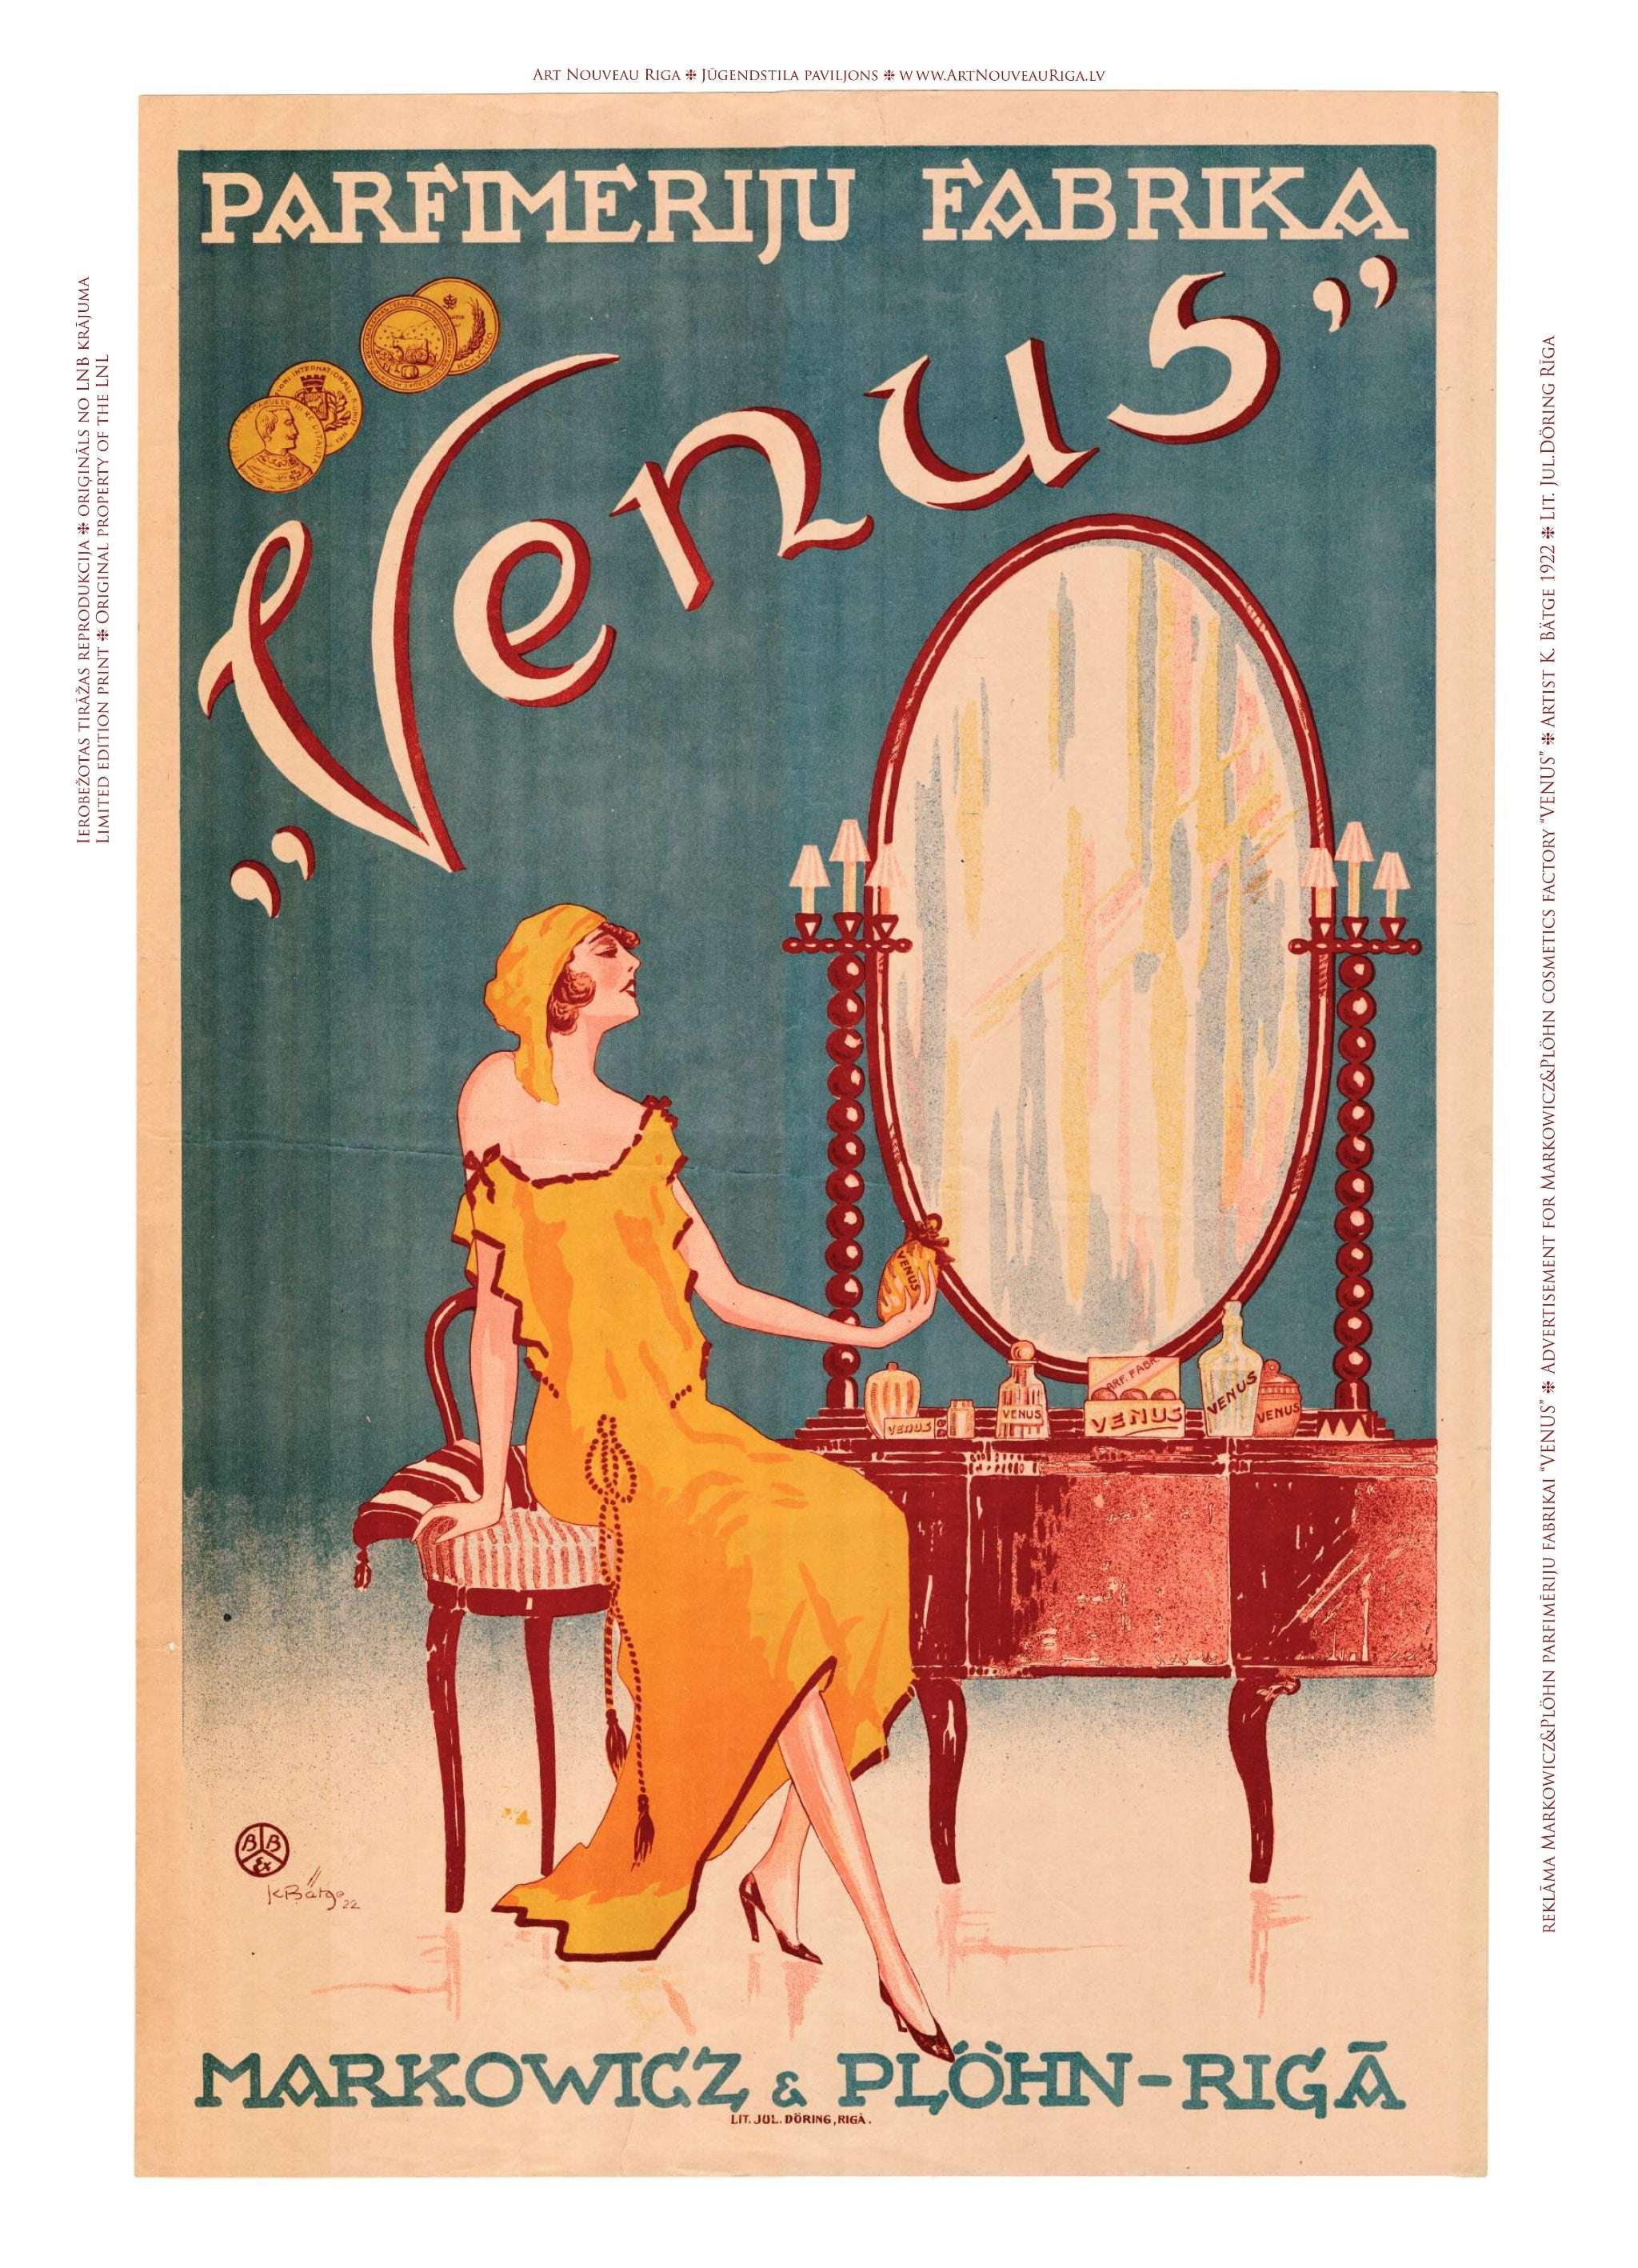 Venus – A Lady's Secret